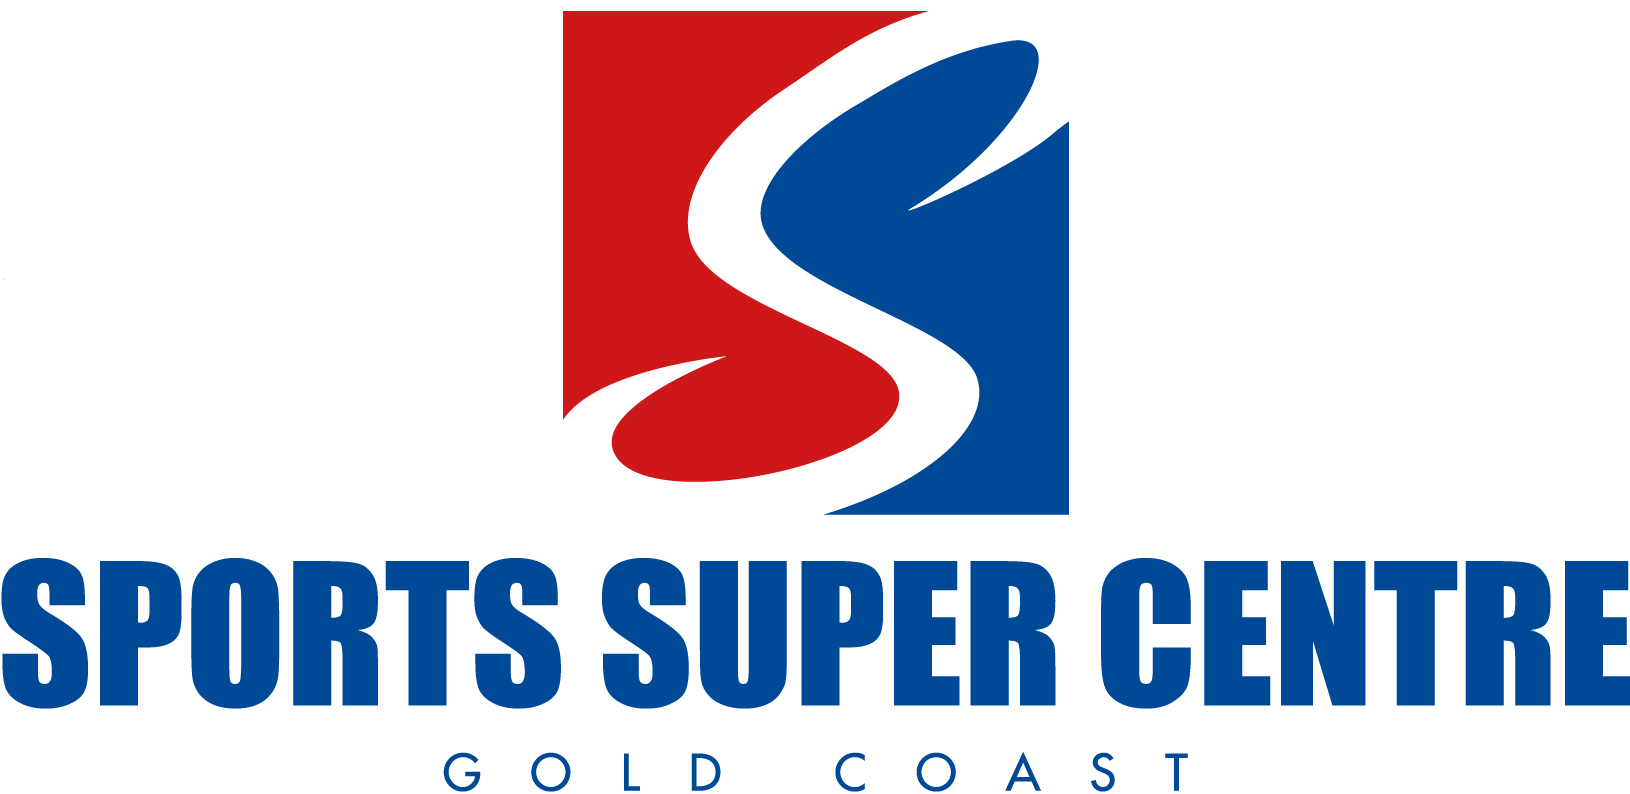 SSC-logo-with-text-underneath-BLUE-TEXT